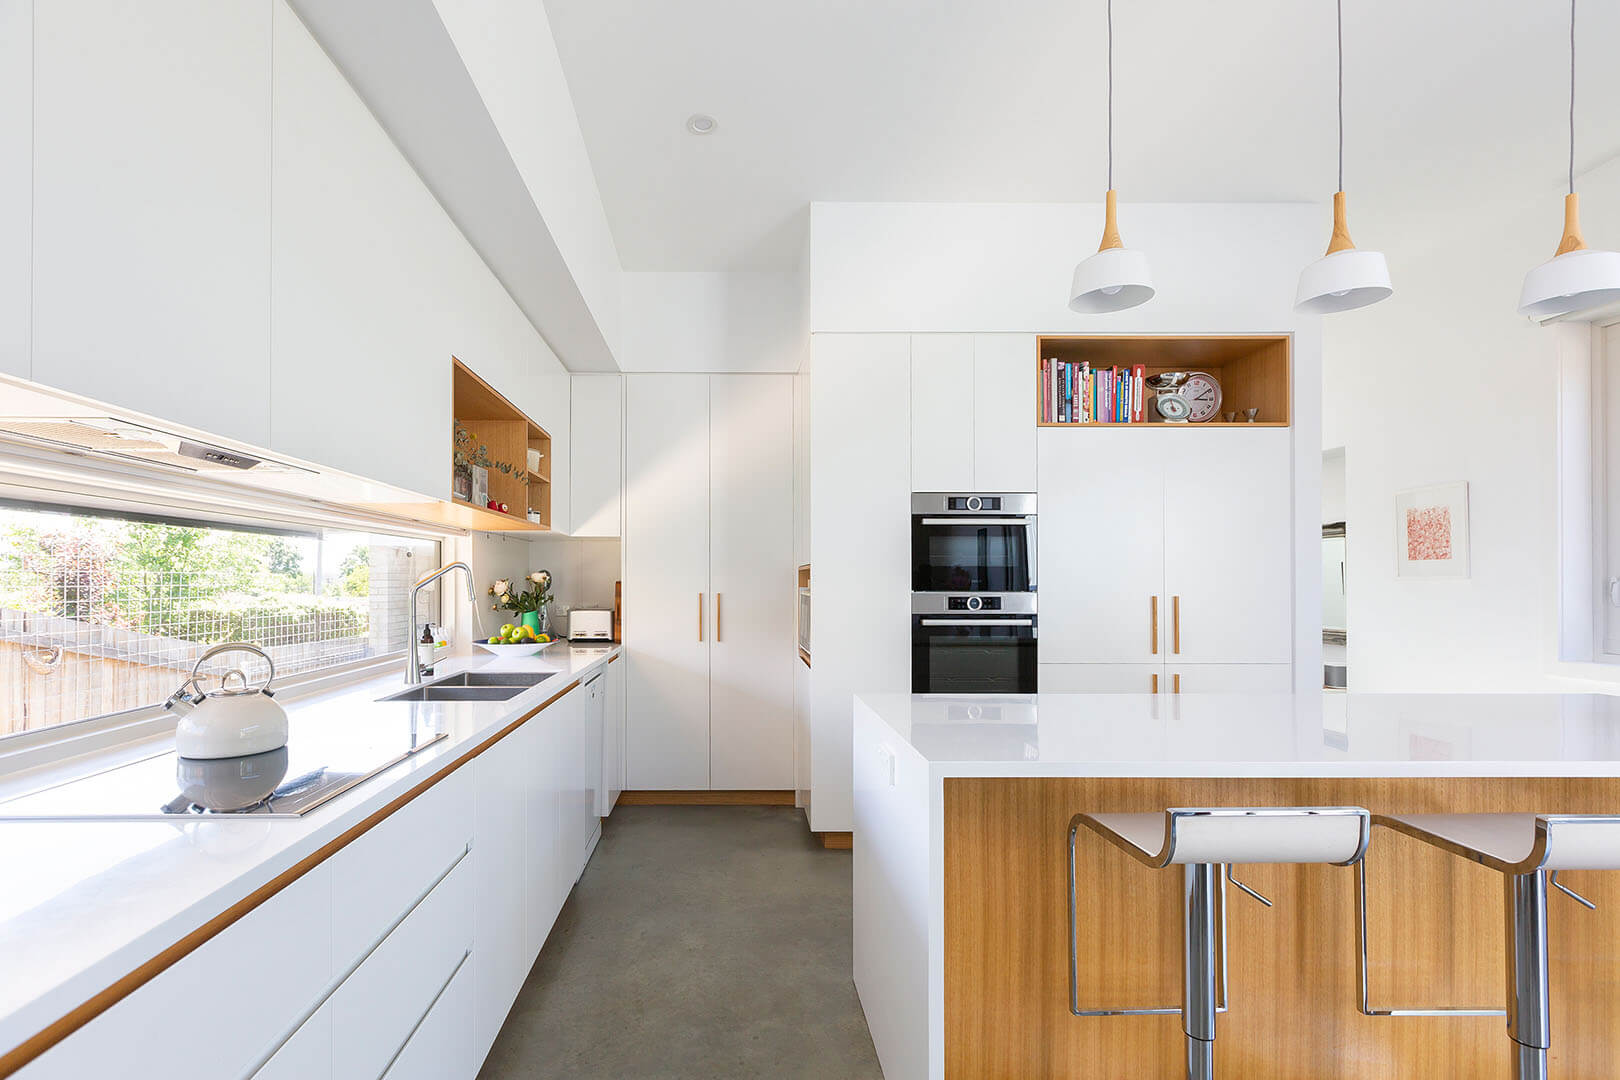 Its signature elements are the Shou Sugi Ban cladding, which was beautifully installed by the owner, and a recycled hardwood slatted screen to the carport, which was made from the roof battens of the original cottage.